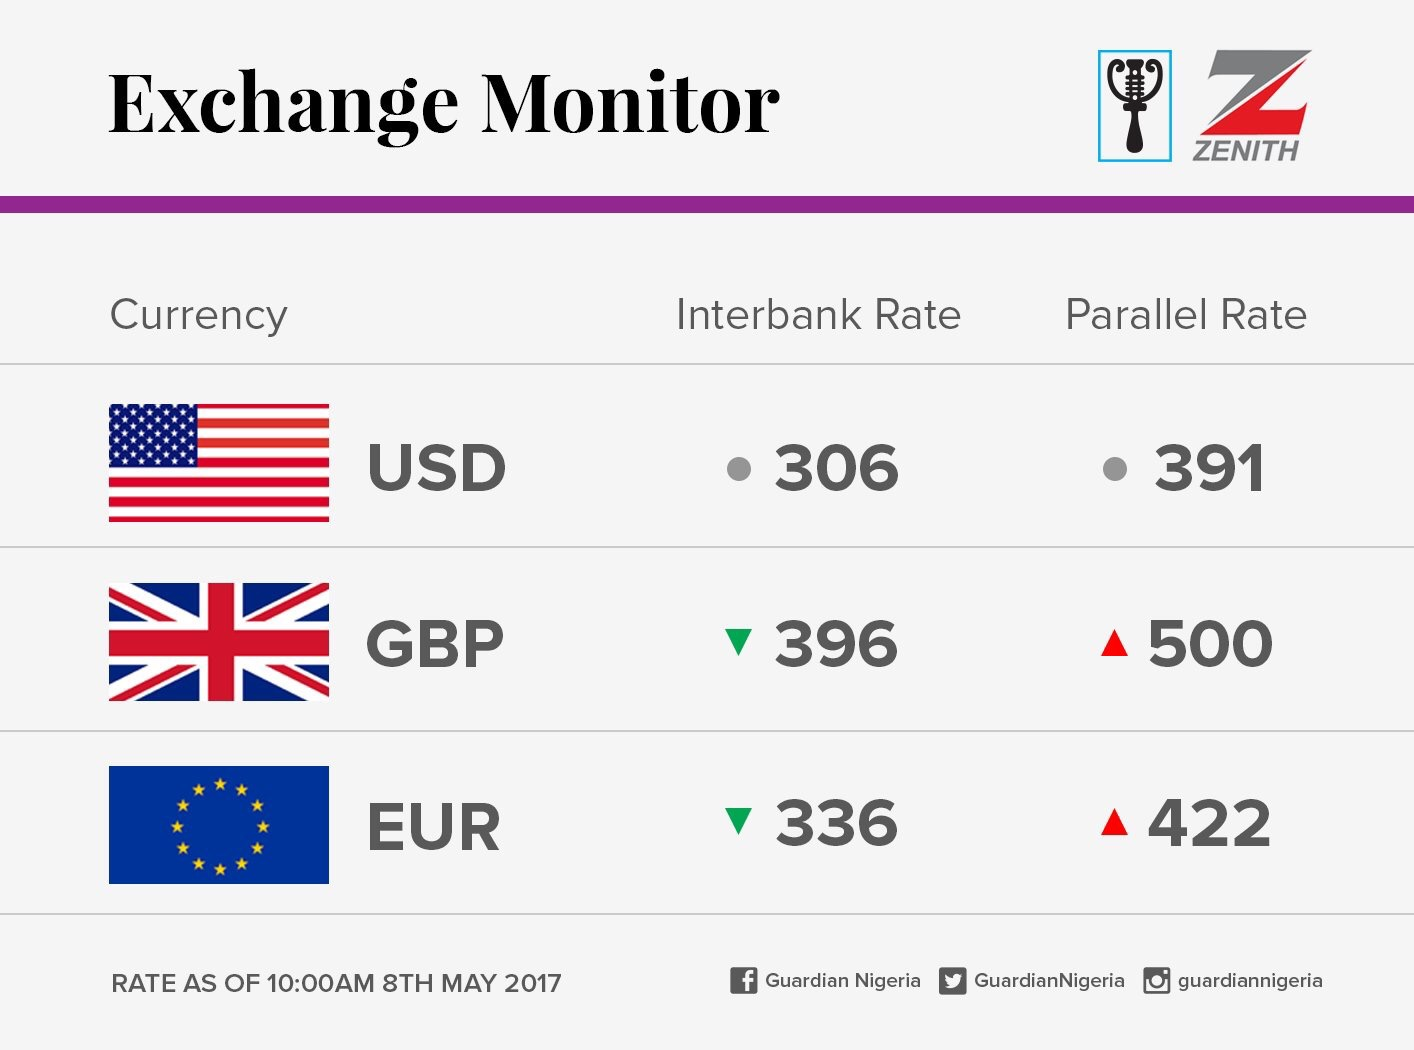 Exchange Rate For 8th May 2017